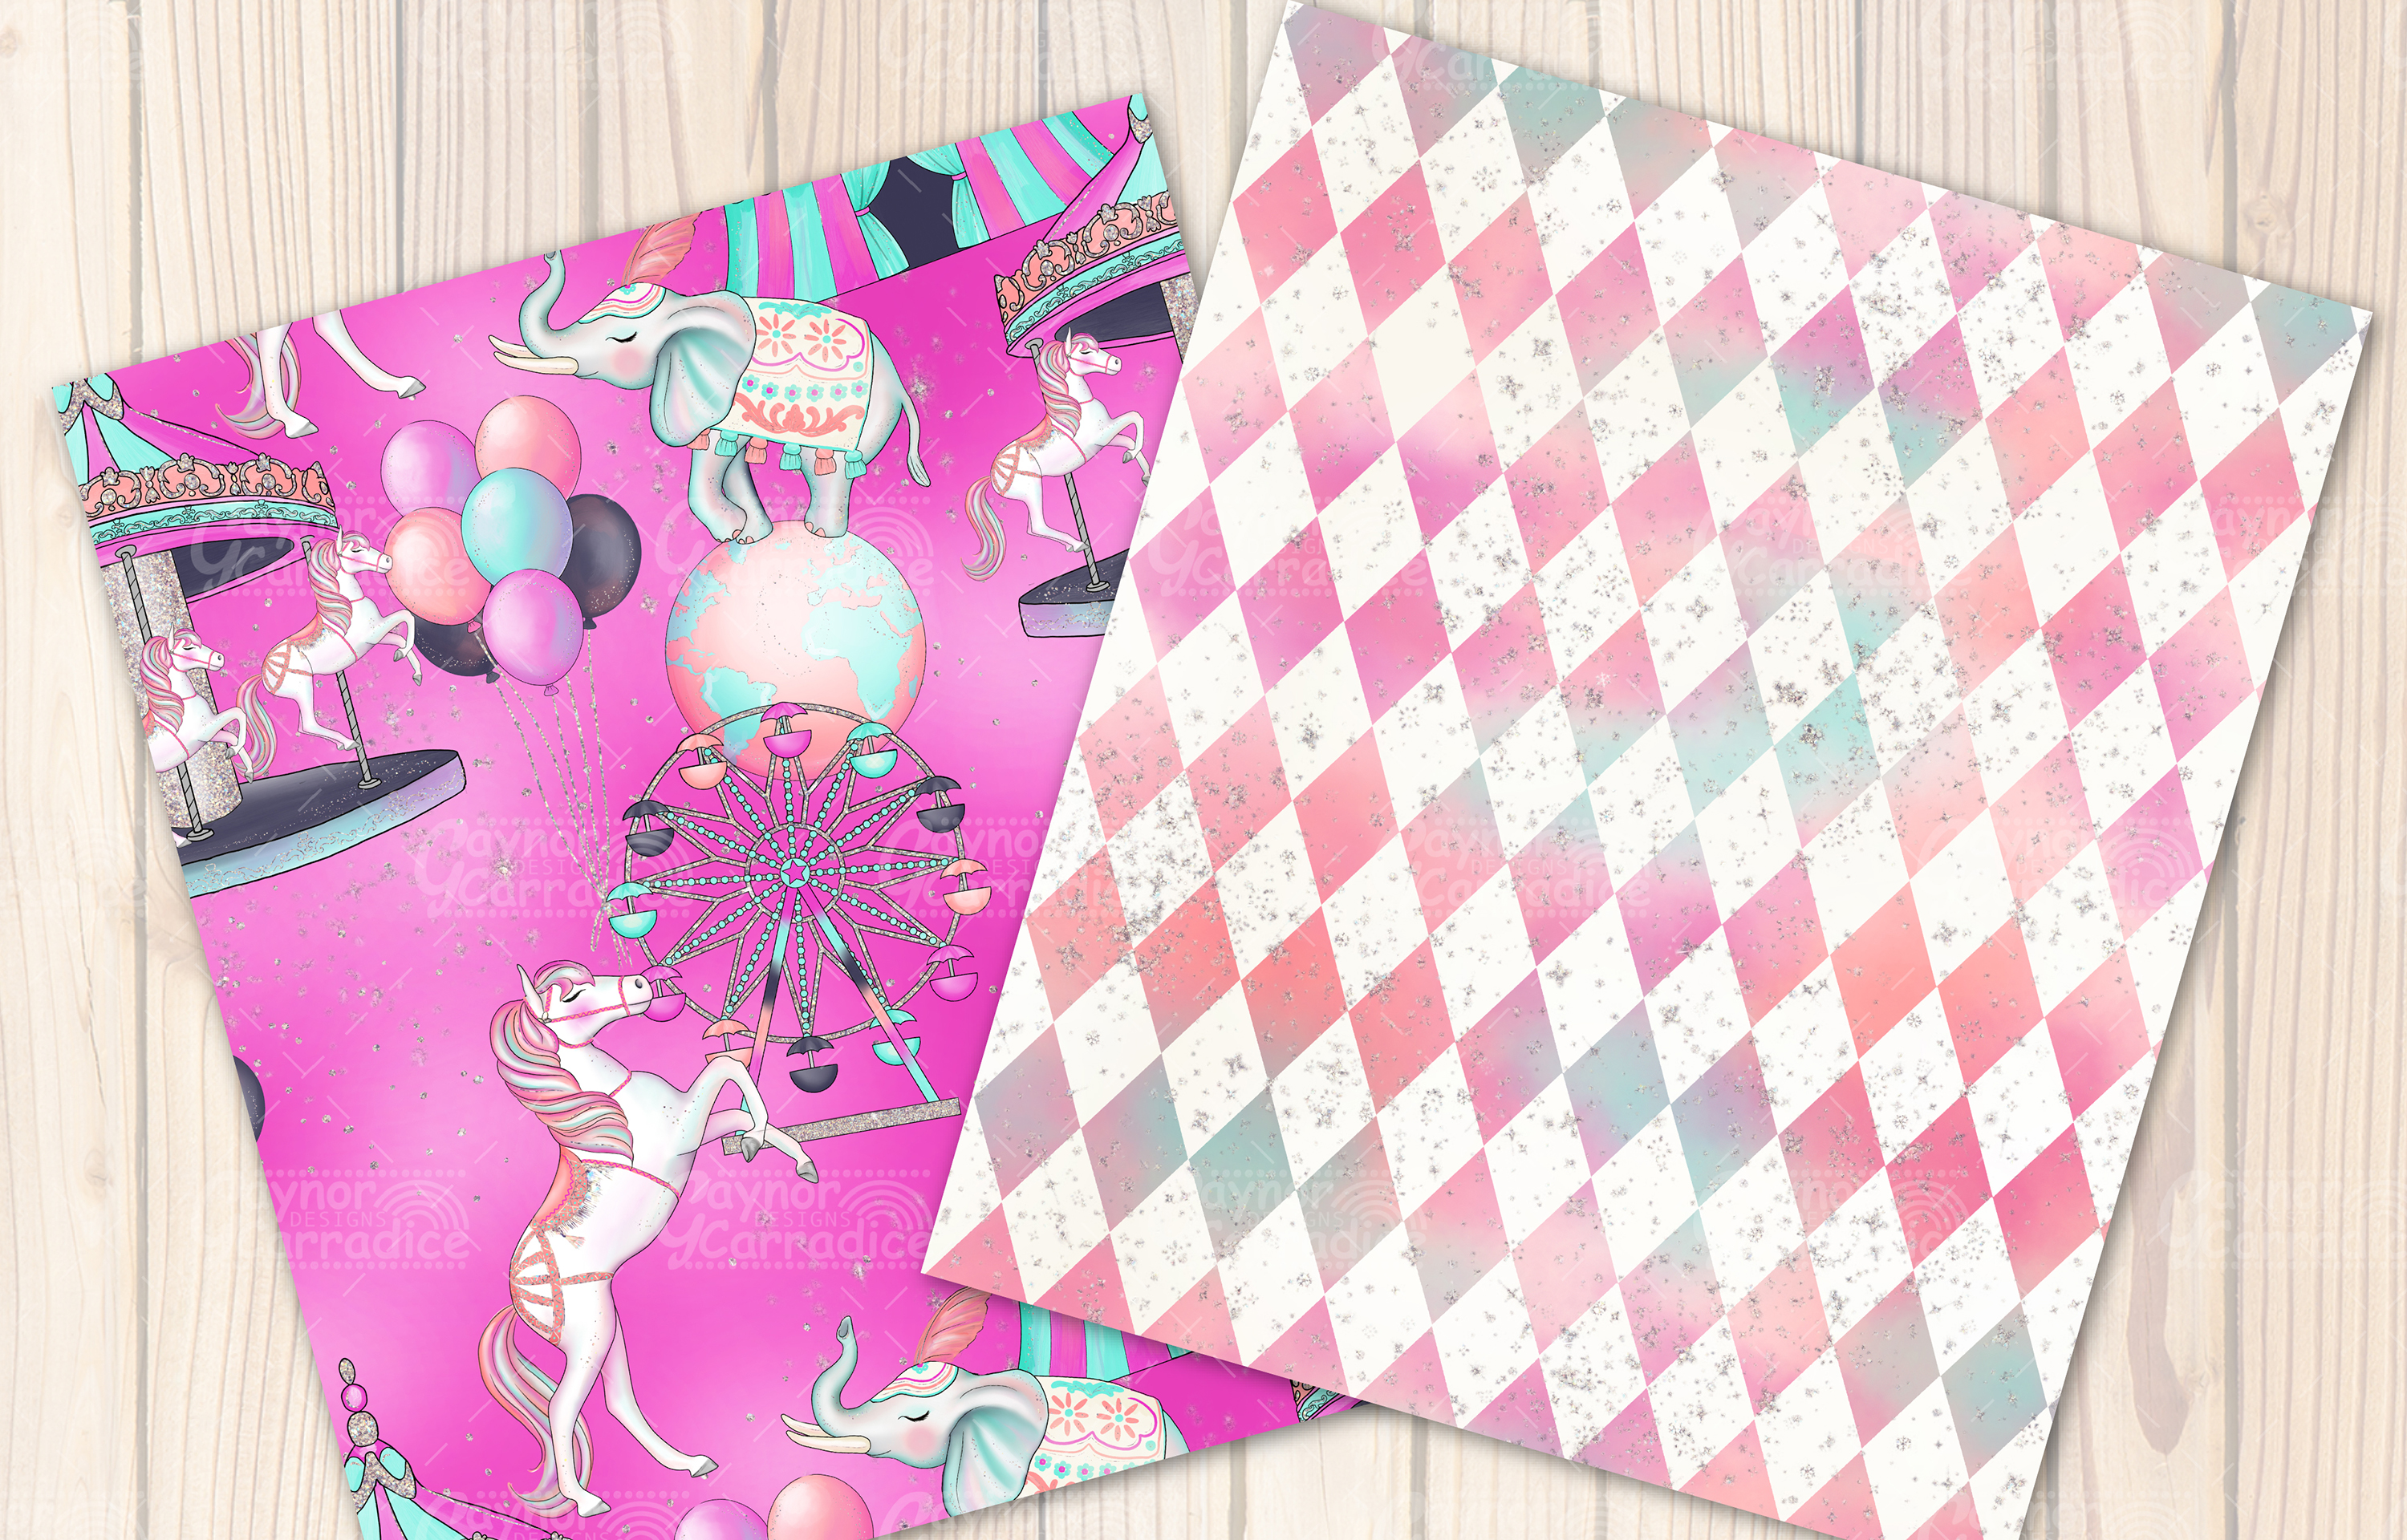 Cirque - Circus Seamless Pattern collection example image 3